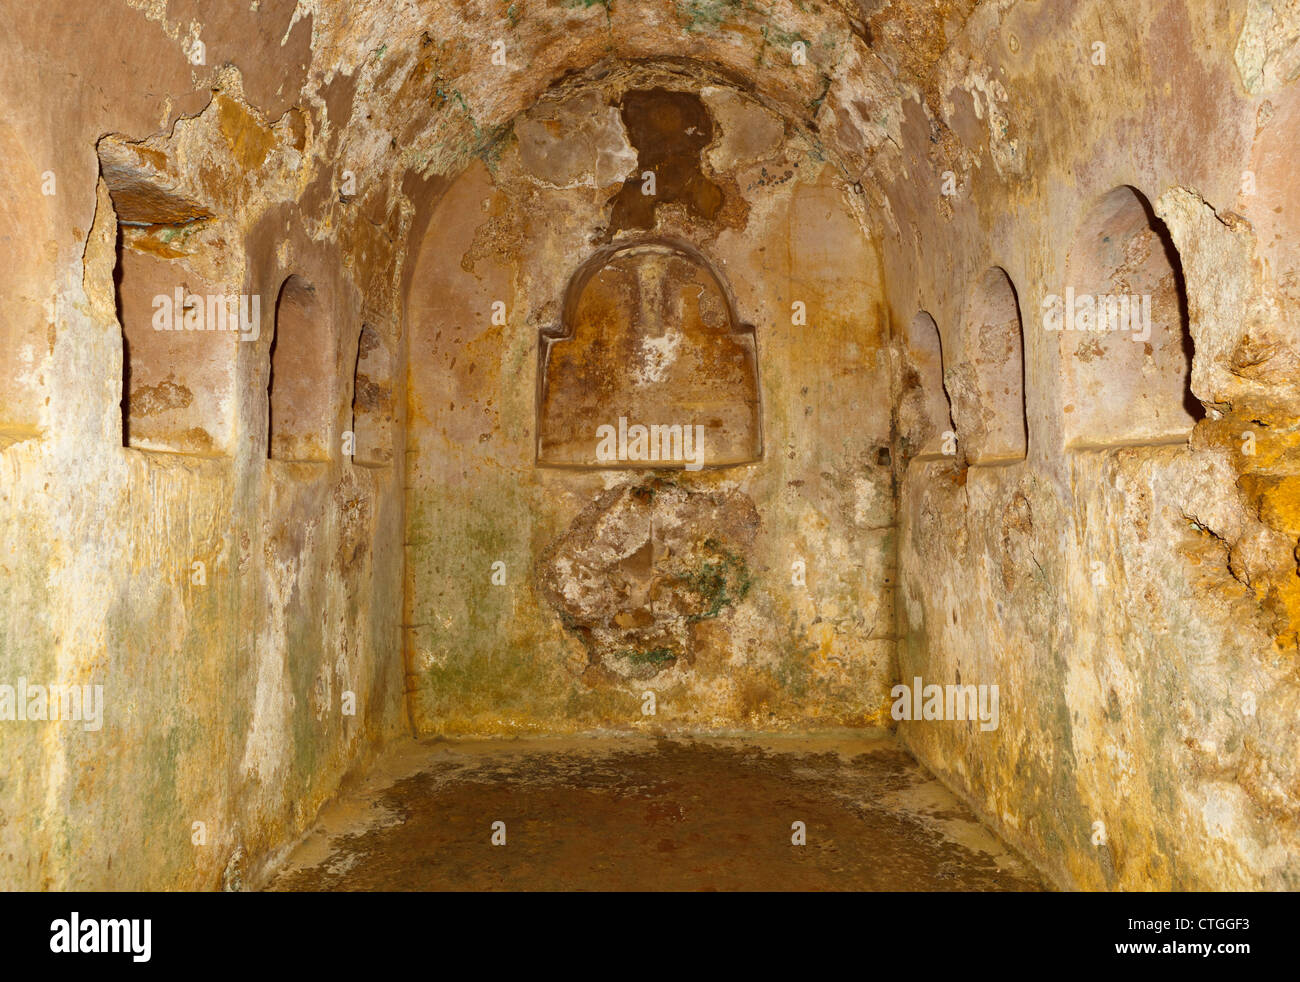 Underground chamber beneath the circular mausoleum in the Roman necropolis, Carmona, Seville Province, Spain. - Stock Image